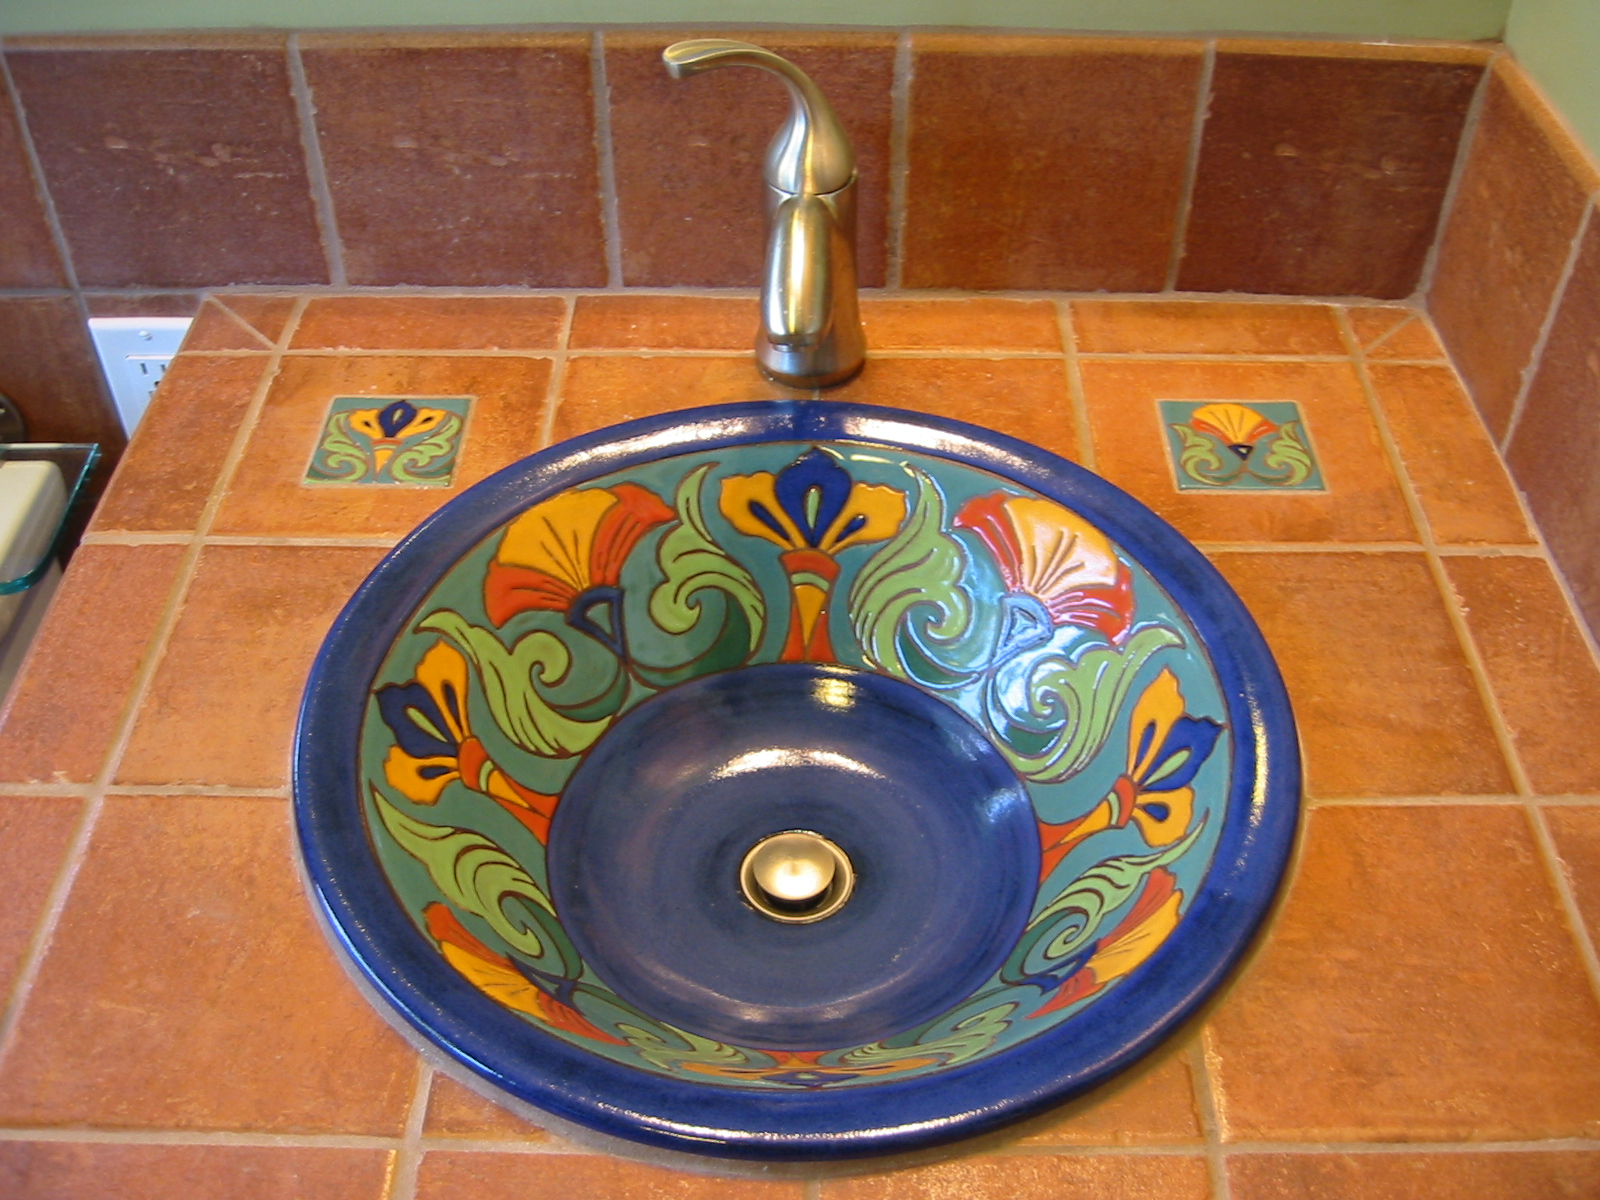 Tile sink with tile inlays